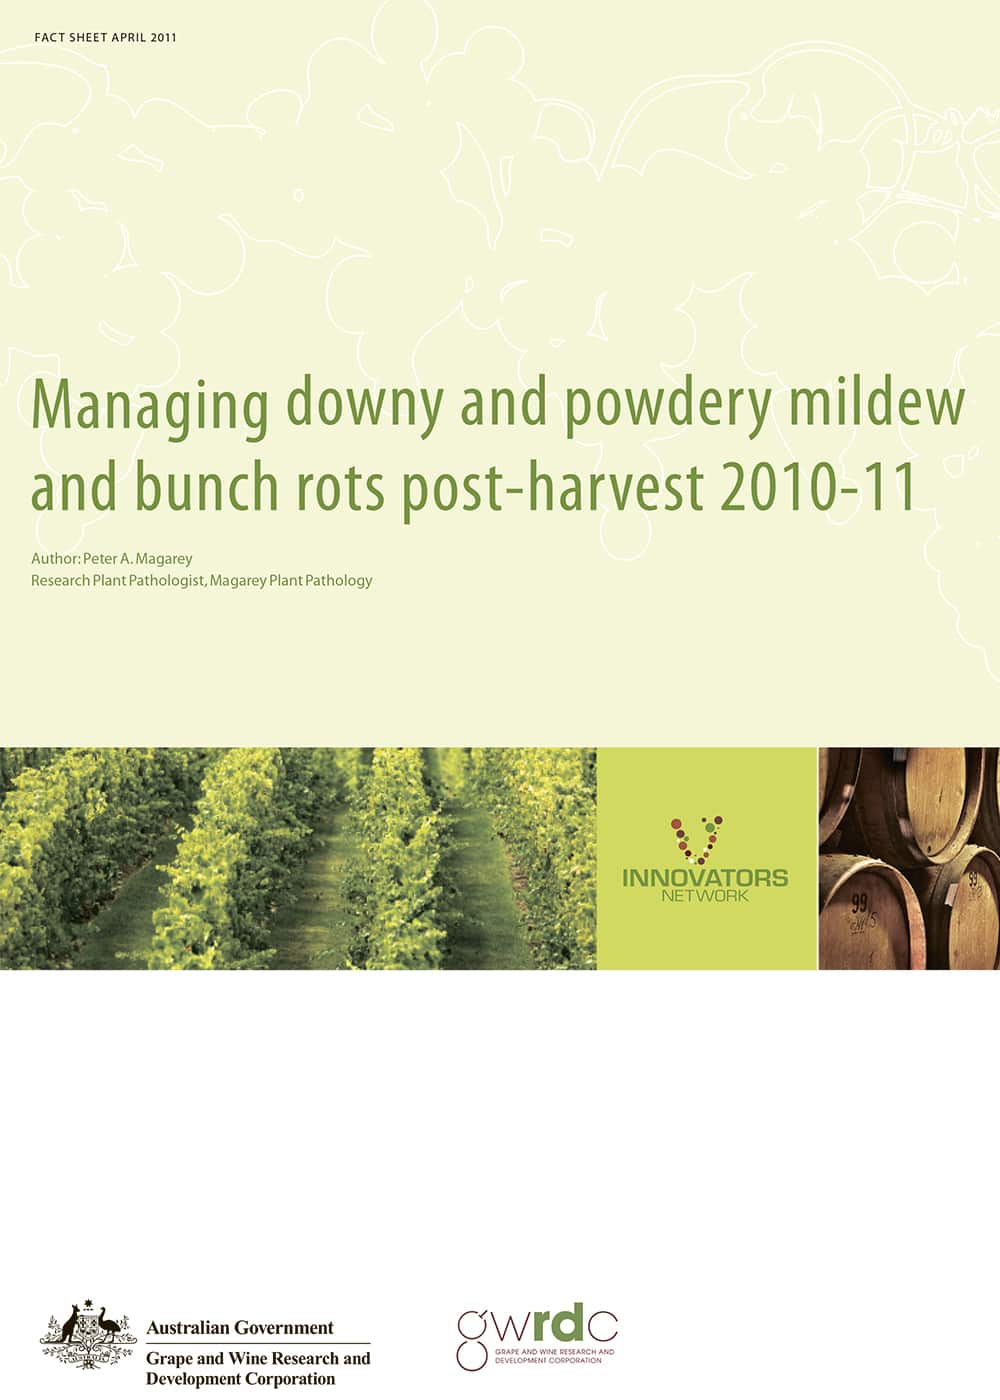 Managing downy and powdery mildew and bunch rots post-harvest